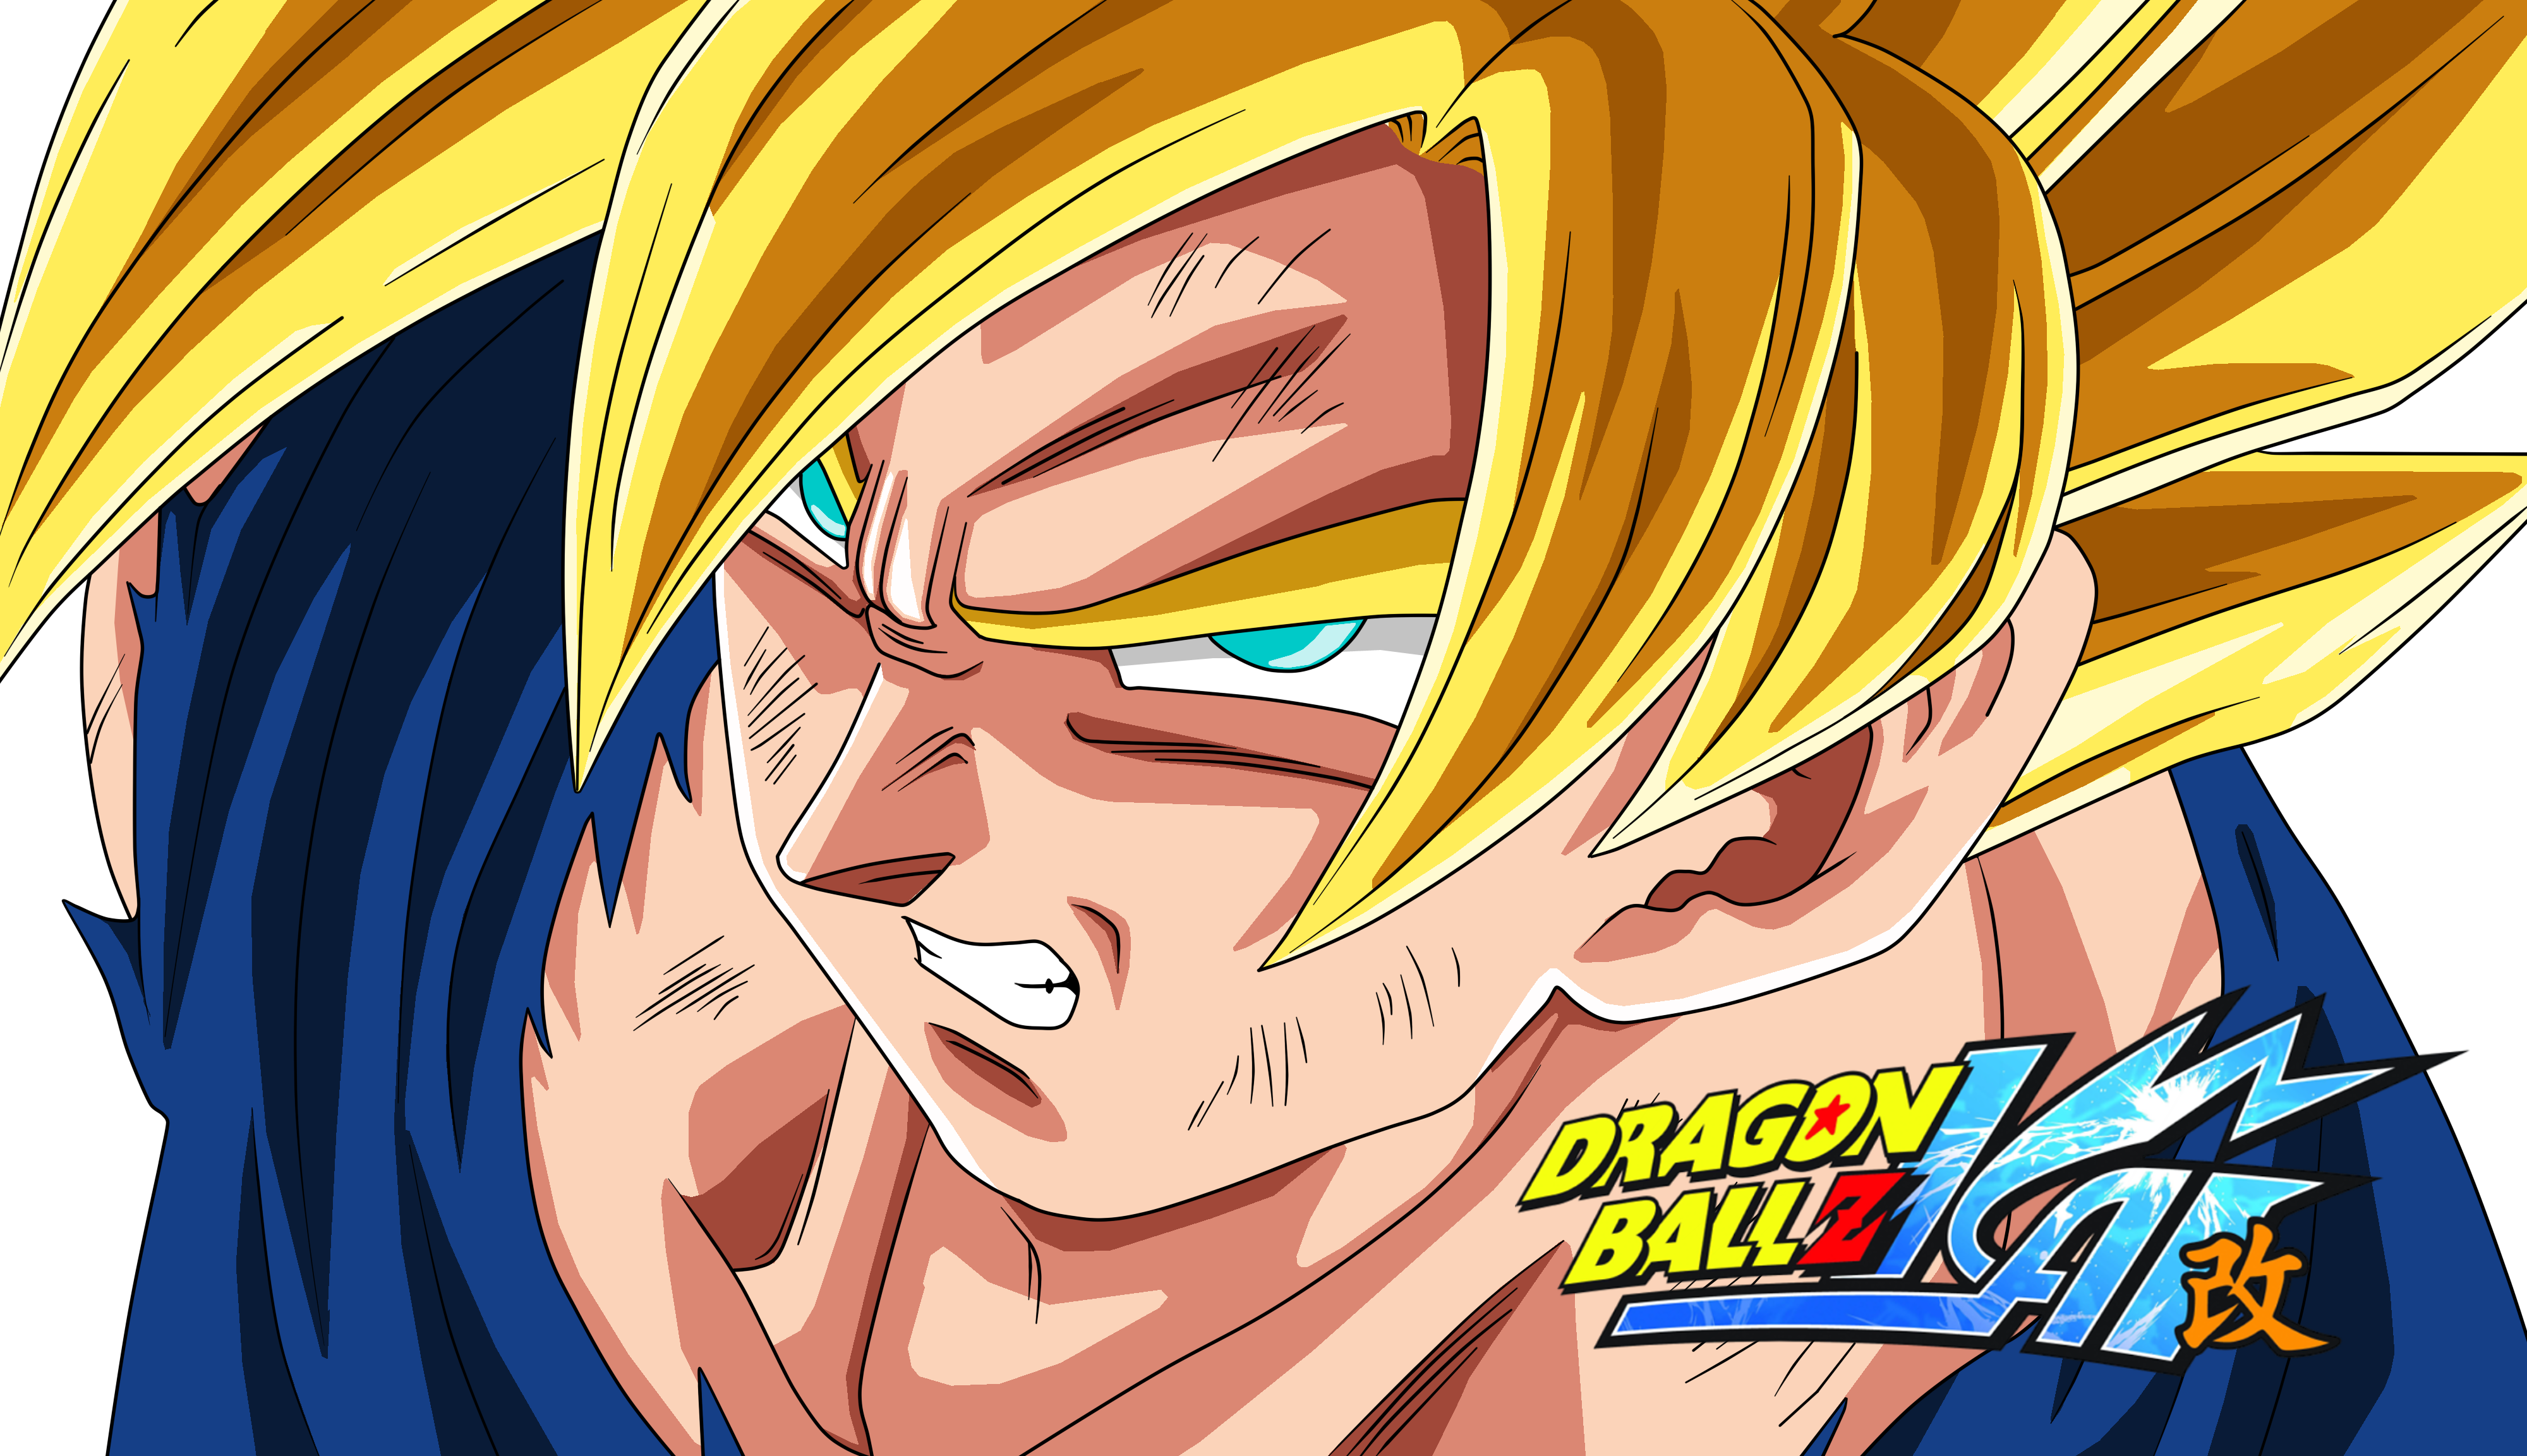 20 Dragon Ball Z Kai Hd Wallpapers Background Images Wallpaper